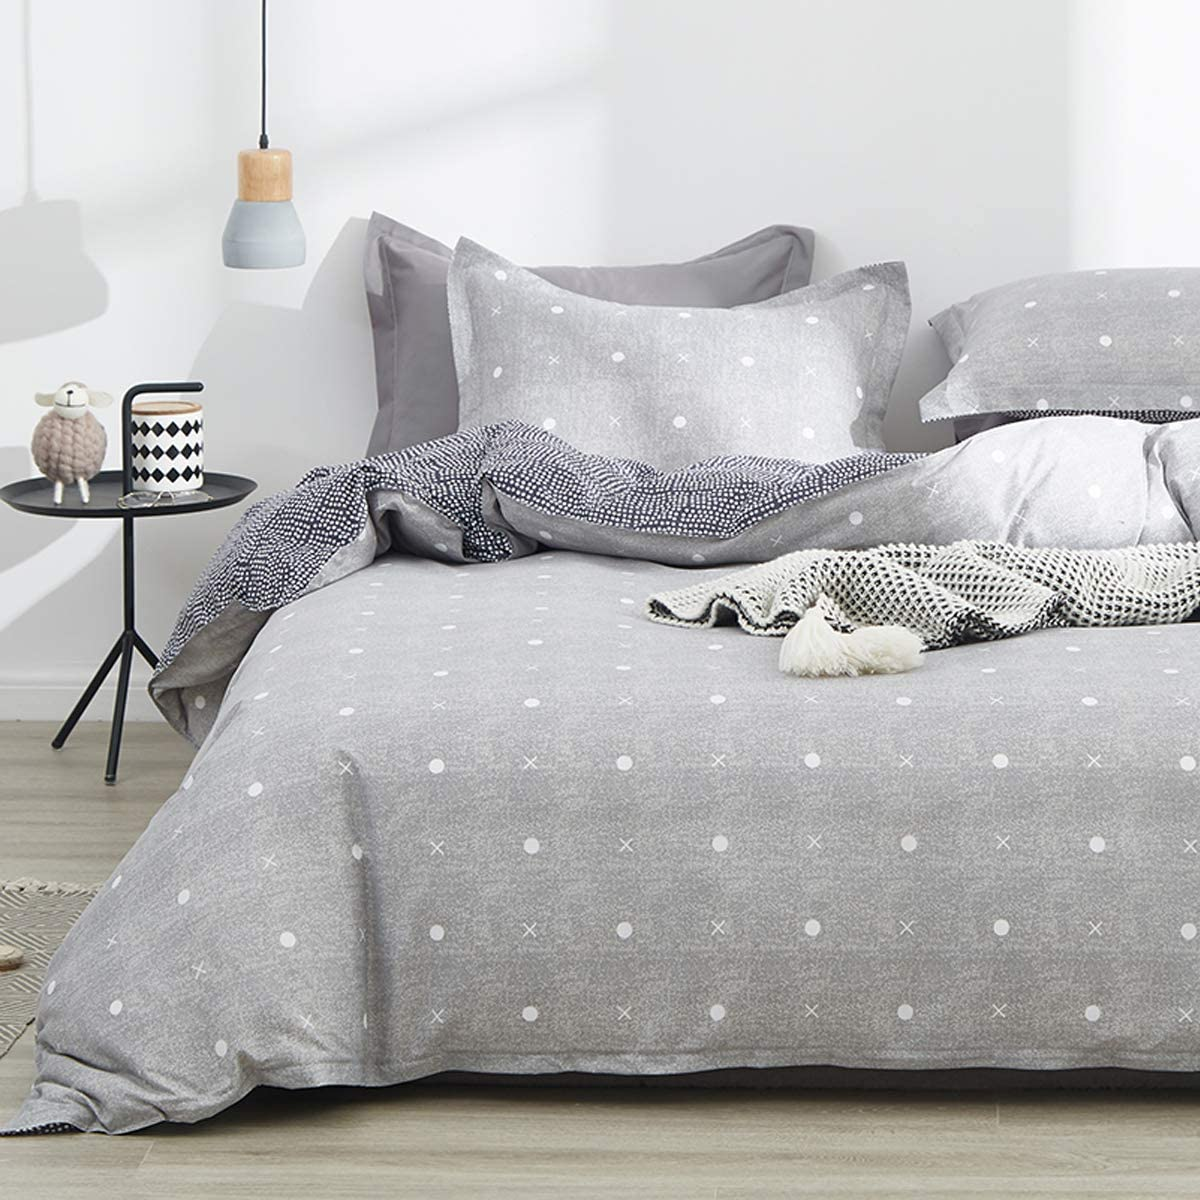 Uozzi Bedding King Duvet Cover Set Blue Gray & Triangles 3 Pieces (1 Spring Duvet Cover 104x90 + 2 Pillow Shams) 800 - TC Luxury Hypoallergenic Adult Soft 1 Comforter Cover with 2 Pillow Shams